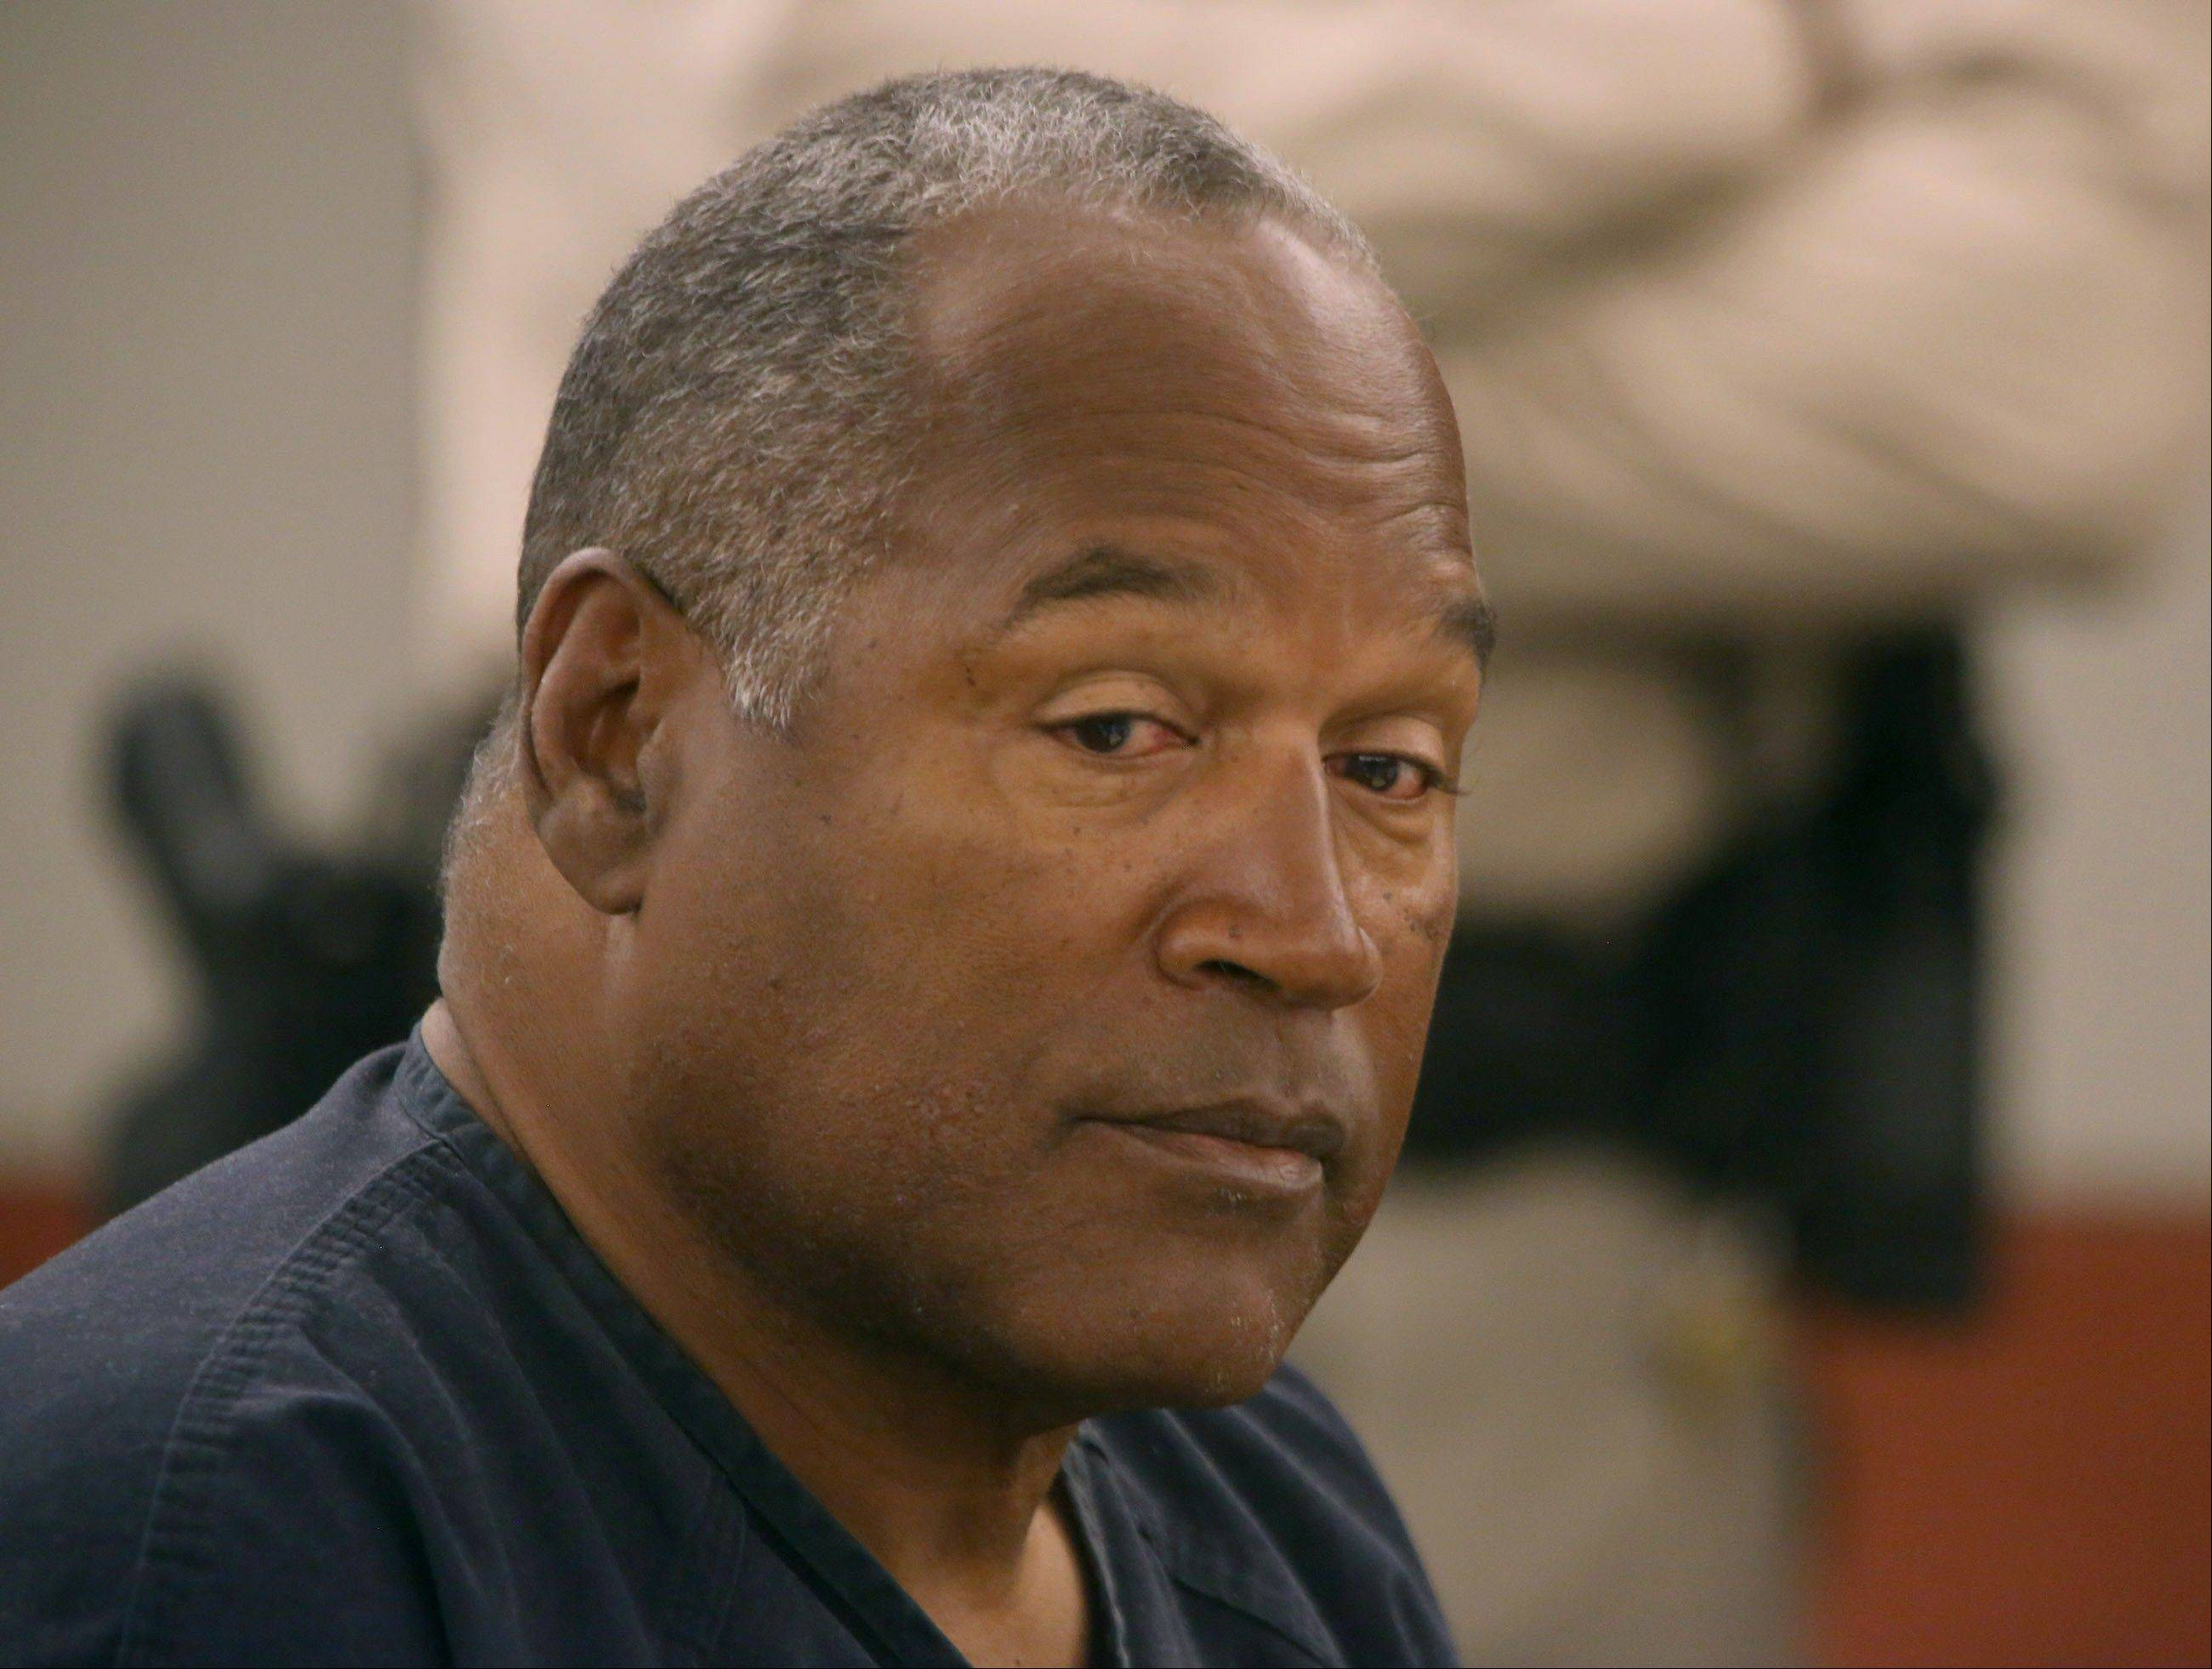 O.J. Simpson appears in court in Las Vegas Monday. Currently serving a nine-to-33-year sentence in state prison as a result of his October 2008 conviction on armed robbery and kidnapping charges, he is seeking a new trial.